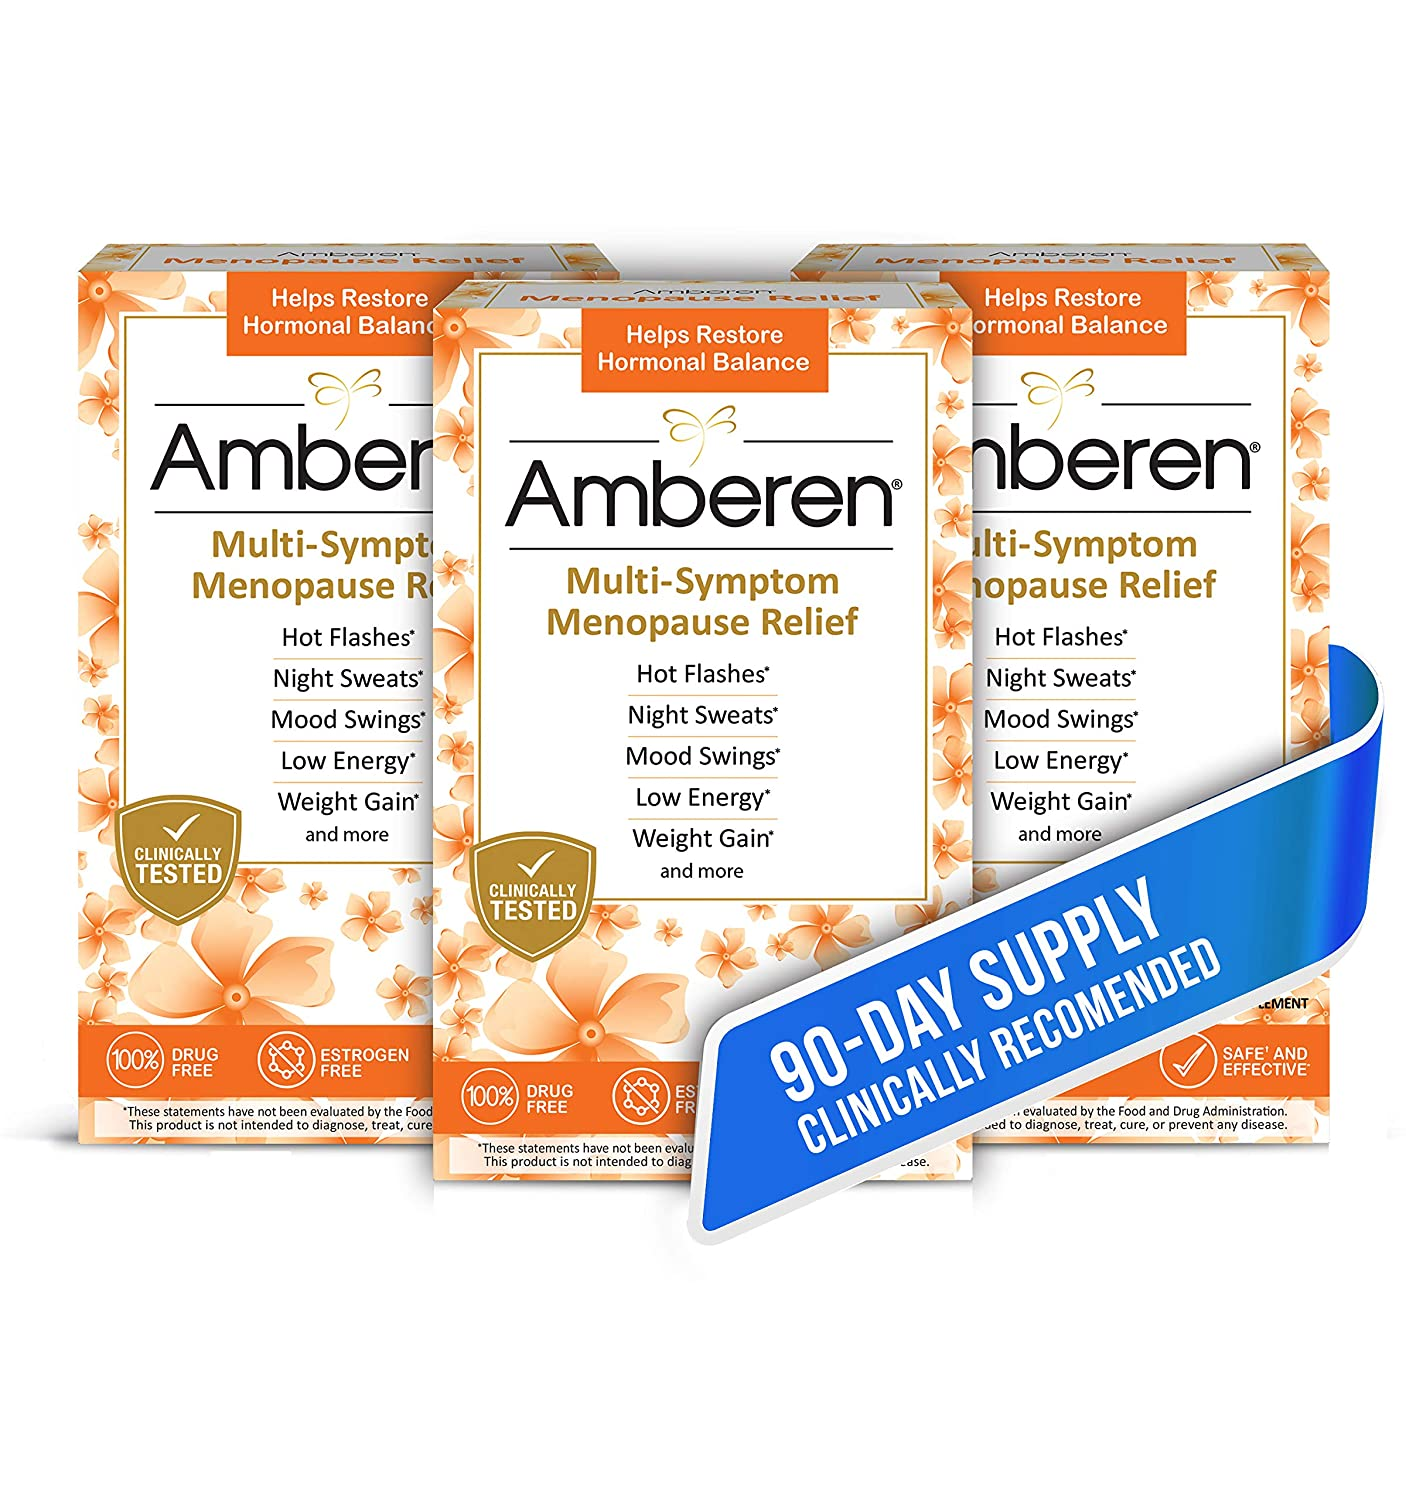 Amberen Safe Multi Symptom Menopause Relief Clinically Shown To Relieve 12 Menopause Symptoms Hot Flashes Night Sweats Mood Swings Low Energy